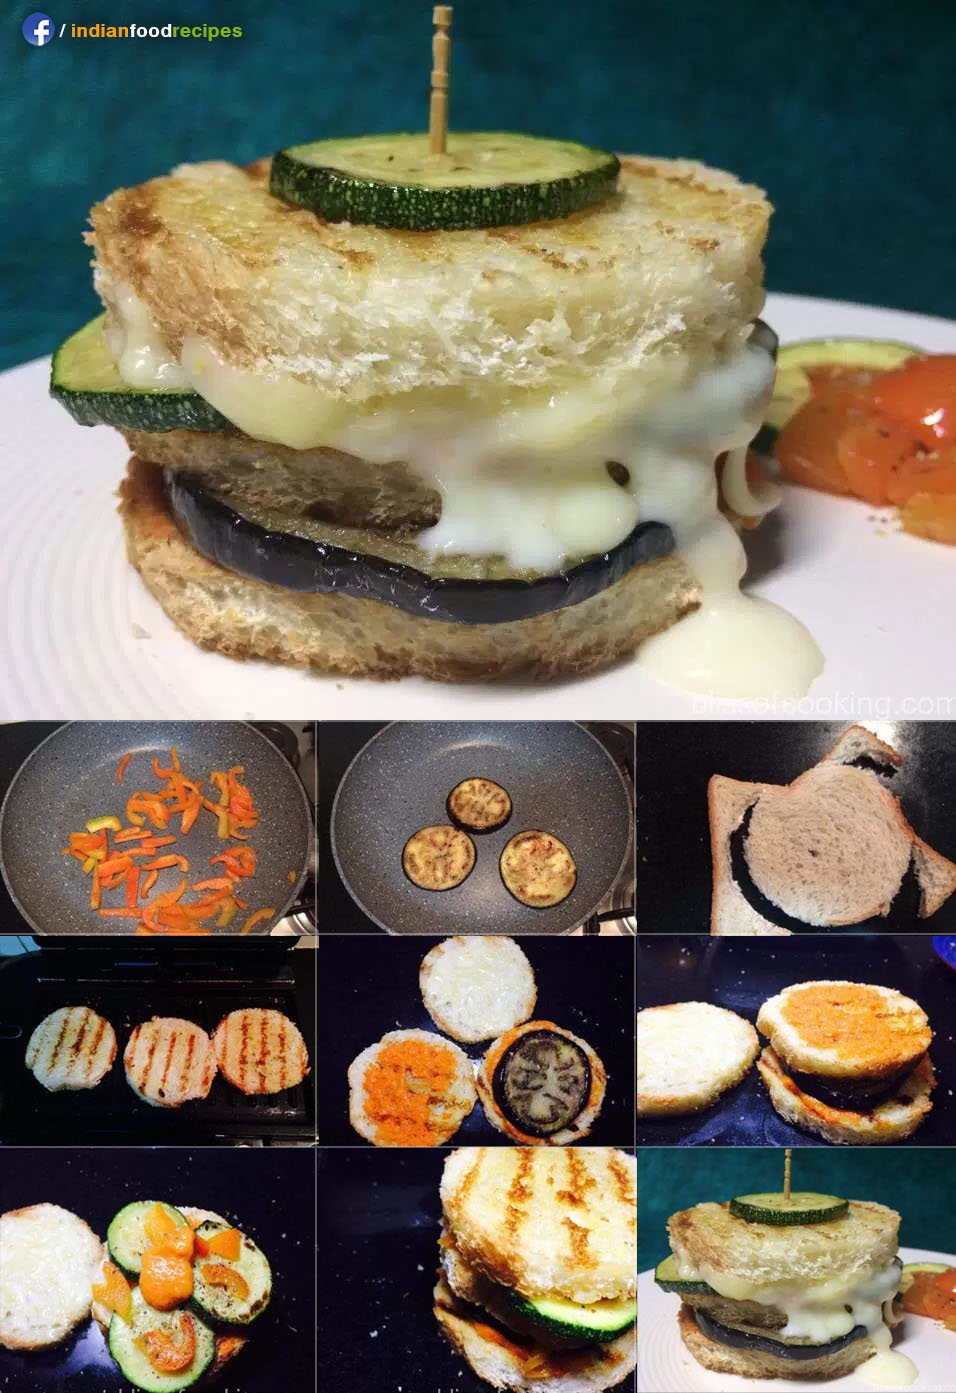 Grilled Zucchini Eggplant Sandwich recipe step by step